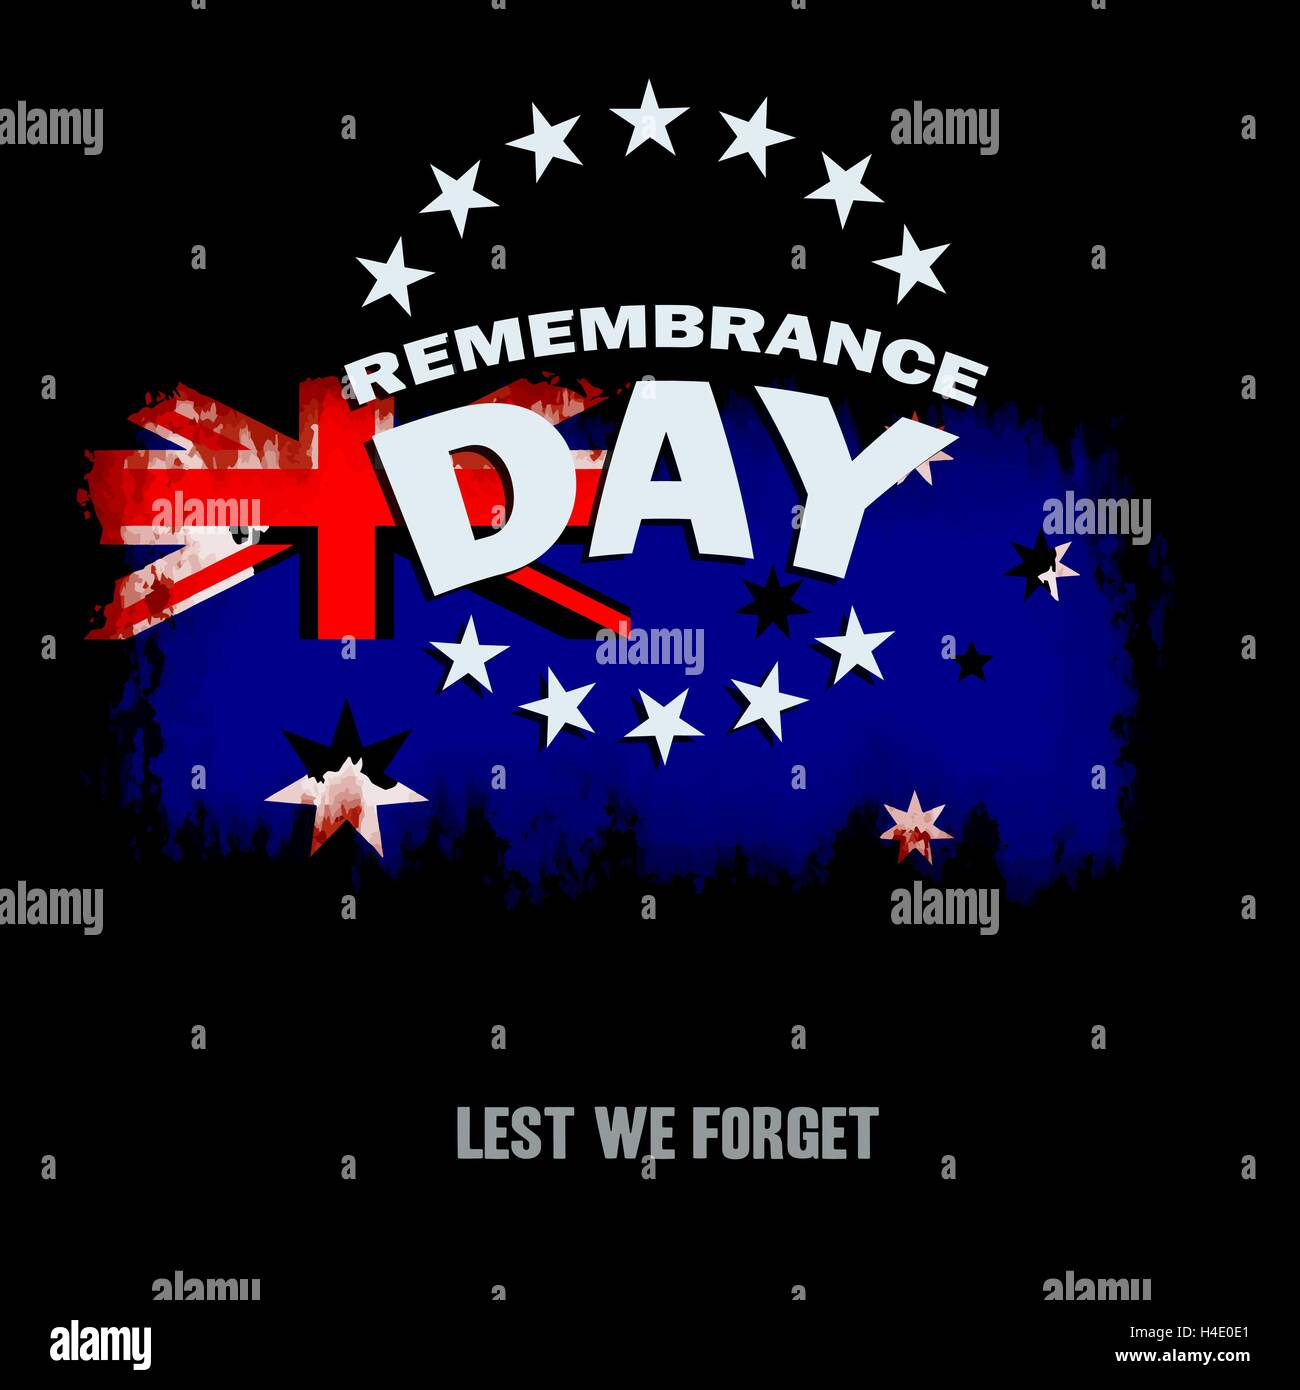 grunge australian flag on dark background with remembrance day and